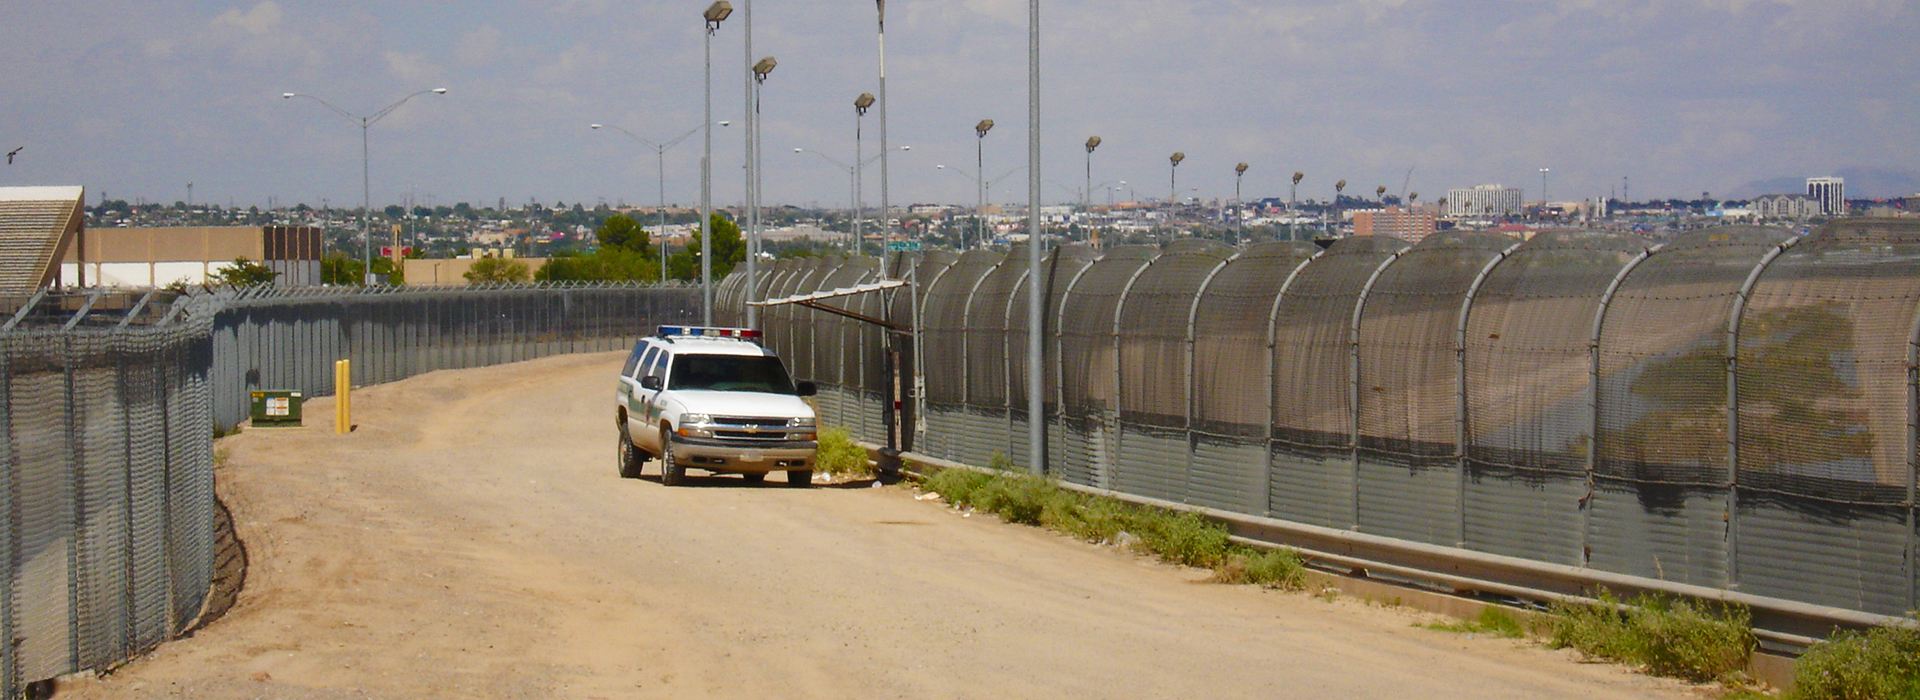 Migration and detention on the U.S.-Mexico border topic of Nov. 15 presentation